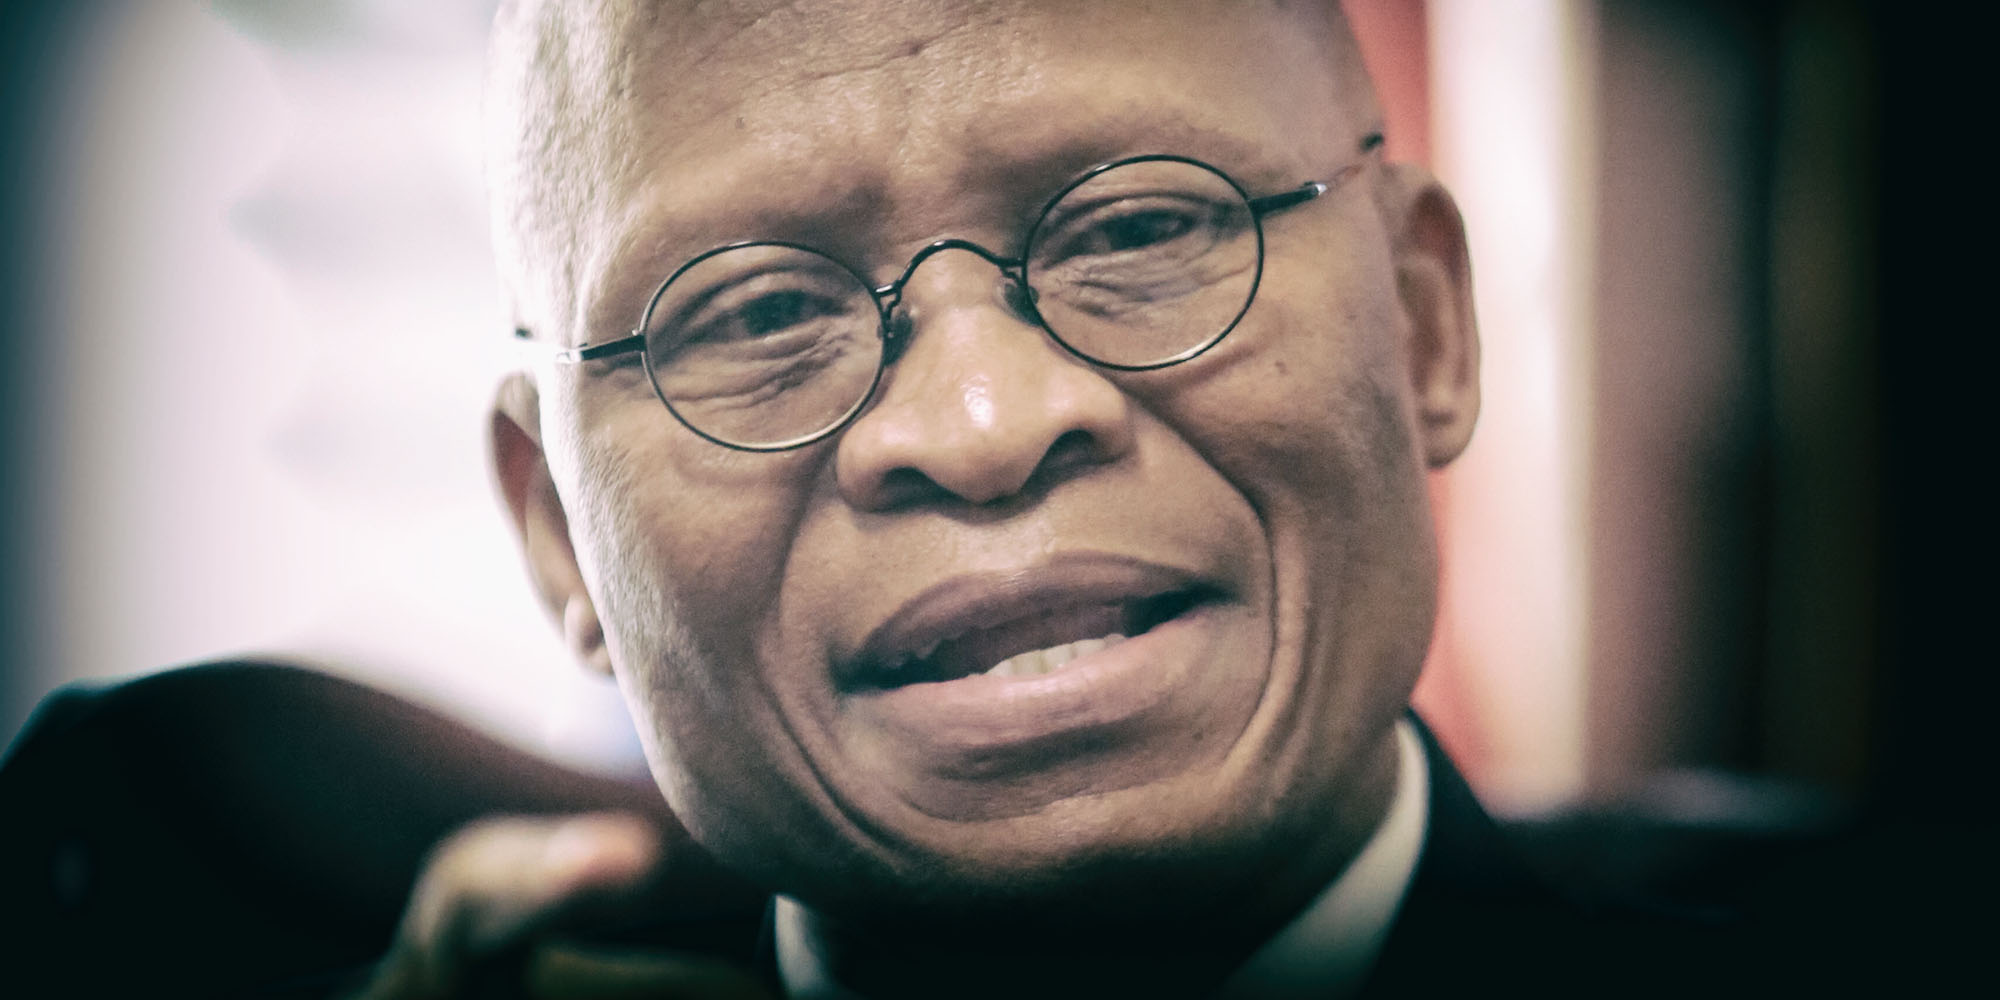 I'm deeply worried about the impact of Covid-19 on SA – Chief Justice Mogoeng Mogoeng - Daily Maverick